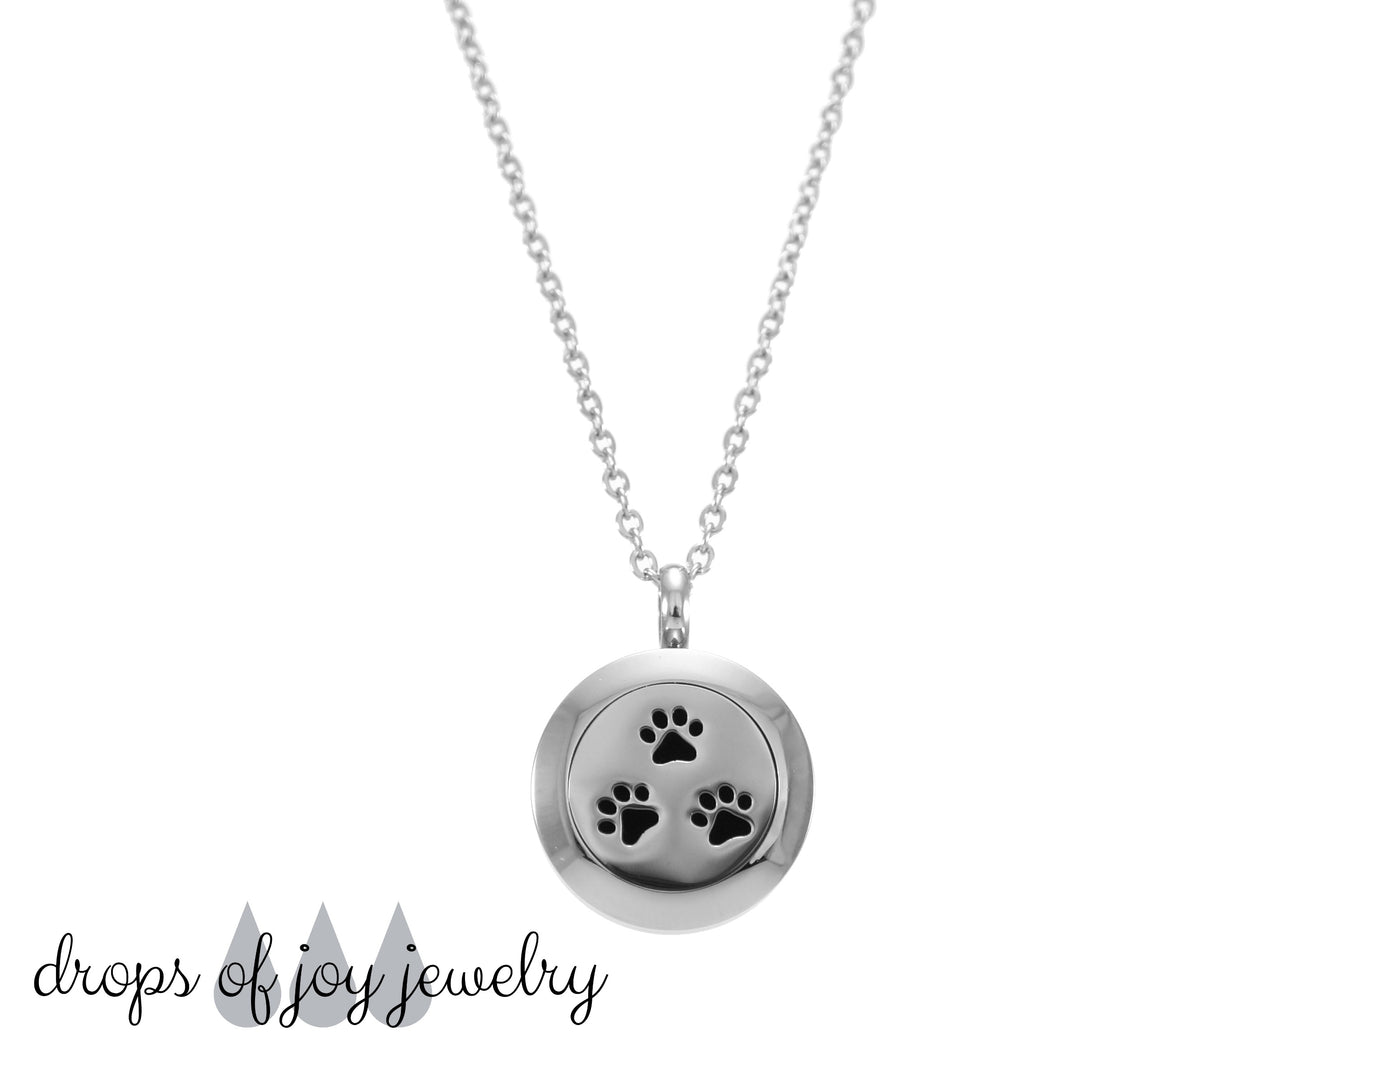 Essential Oil Diffuser Necklaces and More - Drops of Joy Jewelry